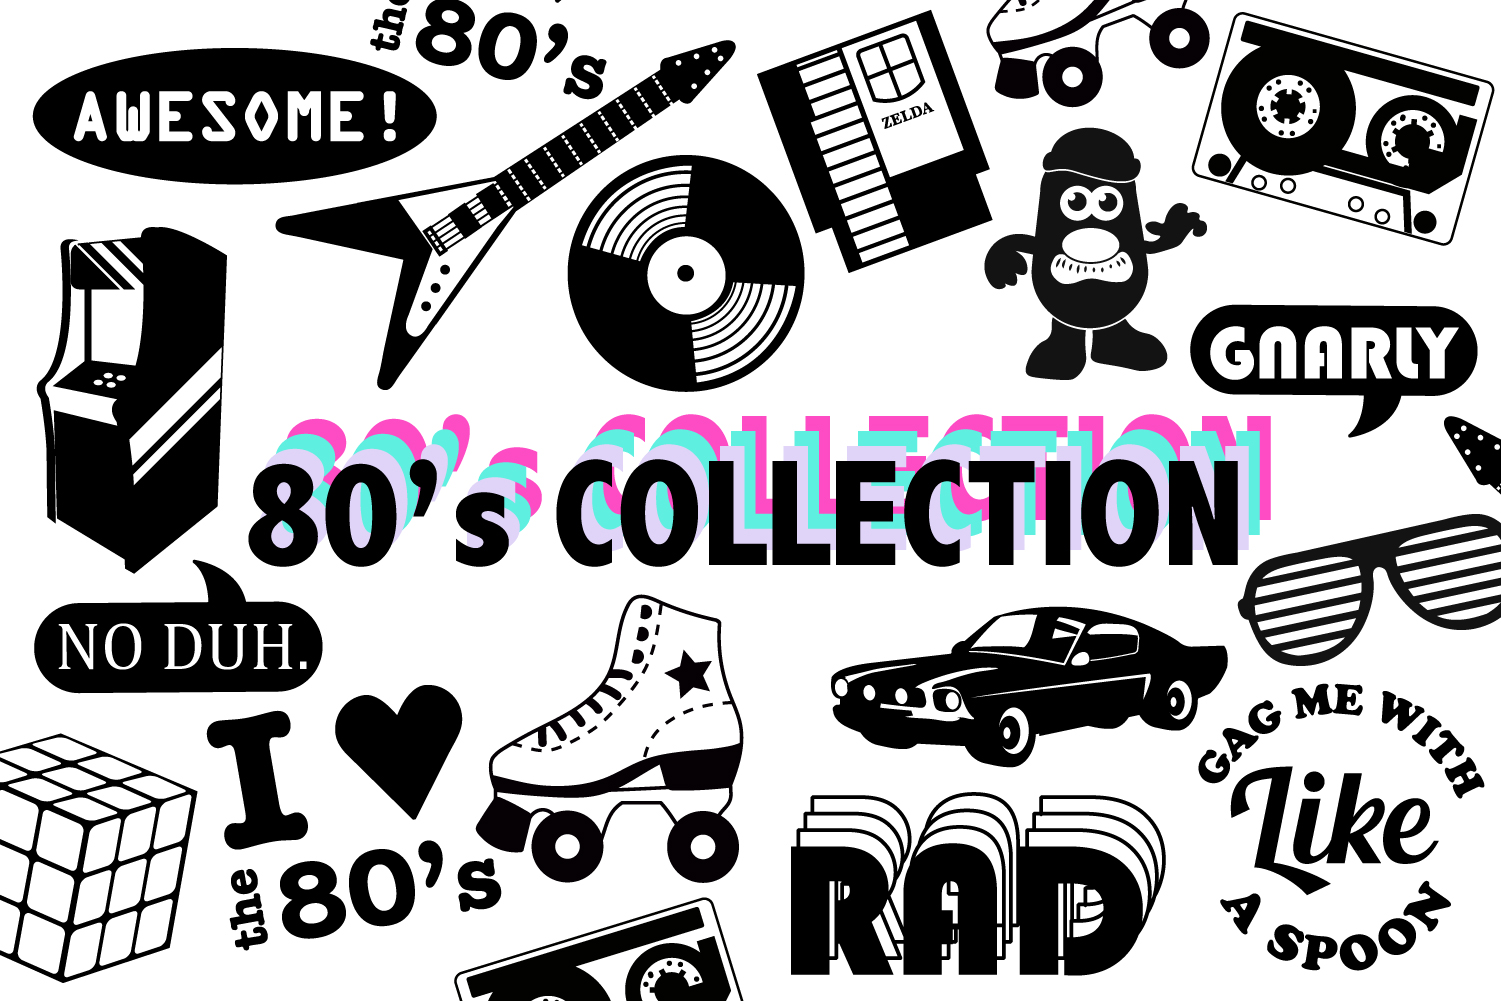 Download Free 80 S Collection Graphic By Mine Eyes Design Creative Fabrica for Cricut Explore, Silhouette and other cutting machines.